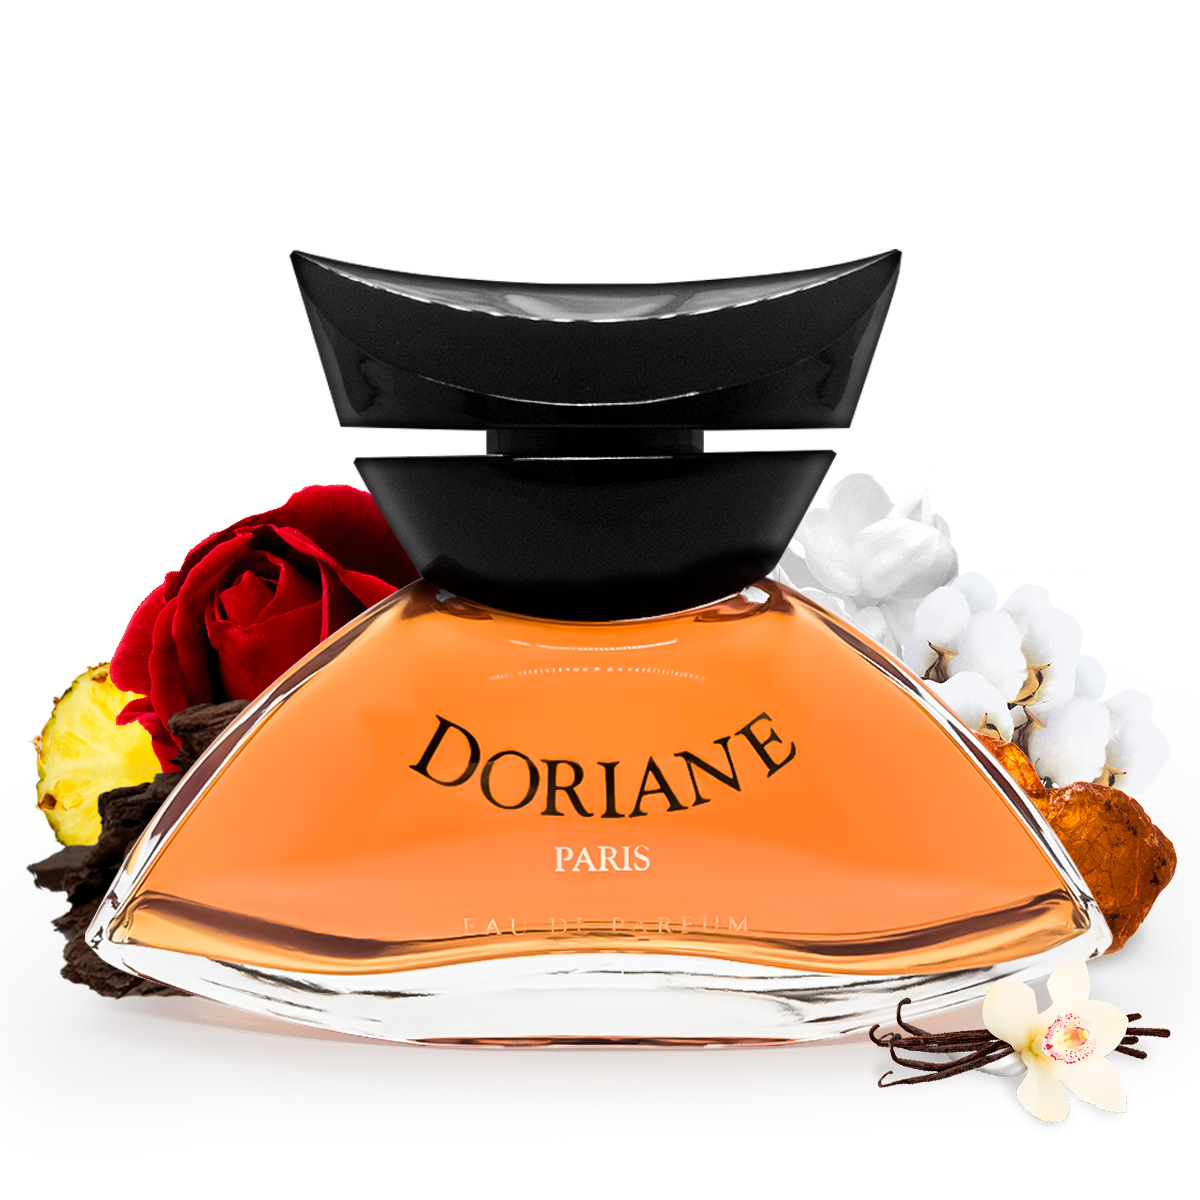 Perfume Doriane Woman Edp 100ml Paris Bleu